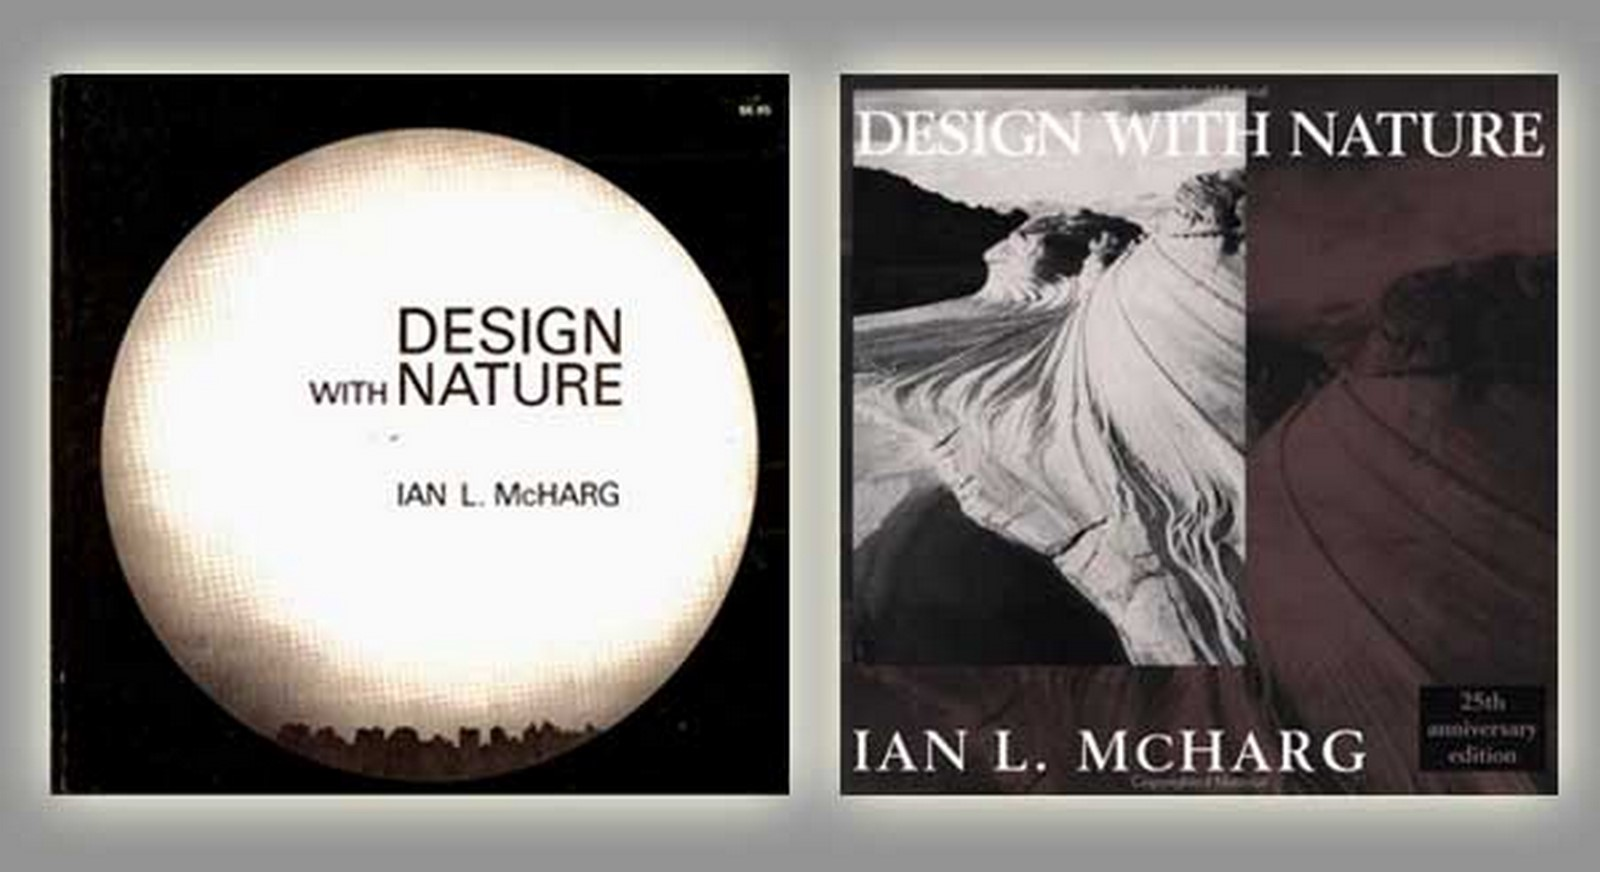 10 Books related to Landscape Architecture everyone should read - Sheet3